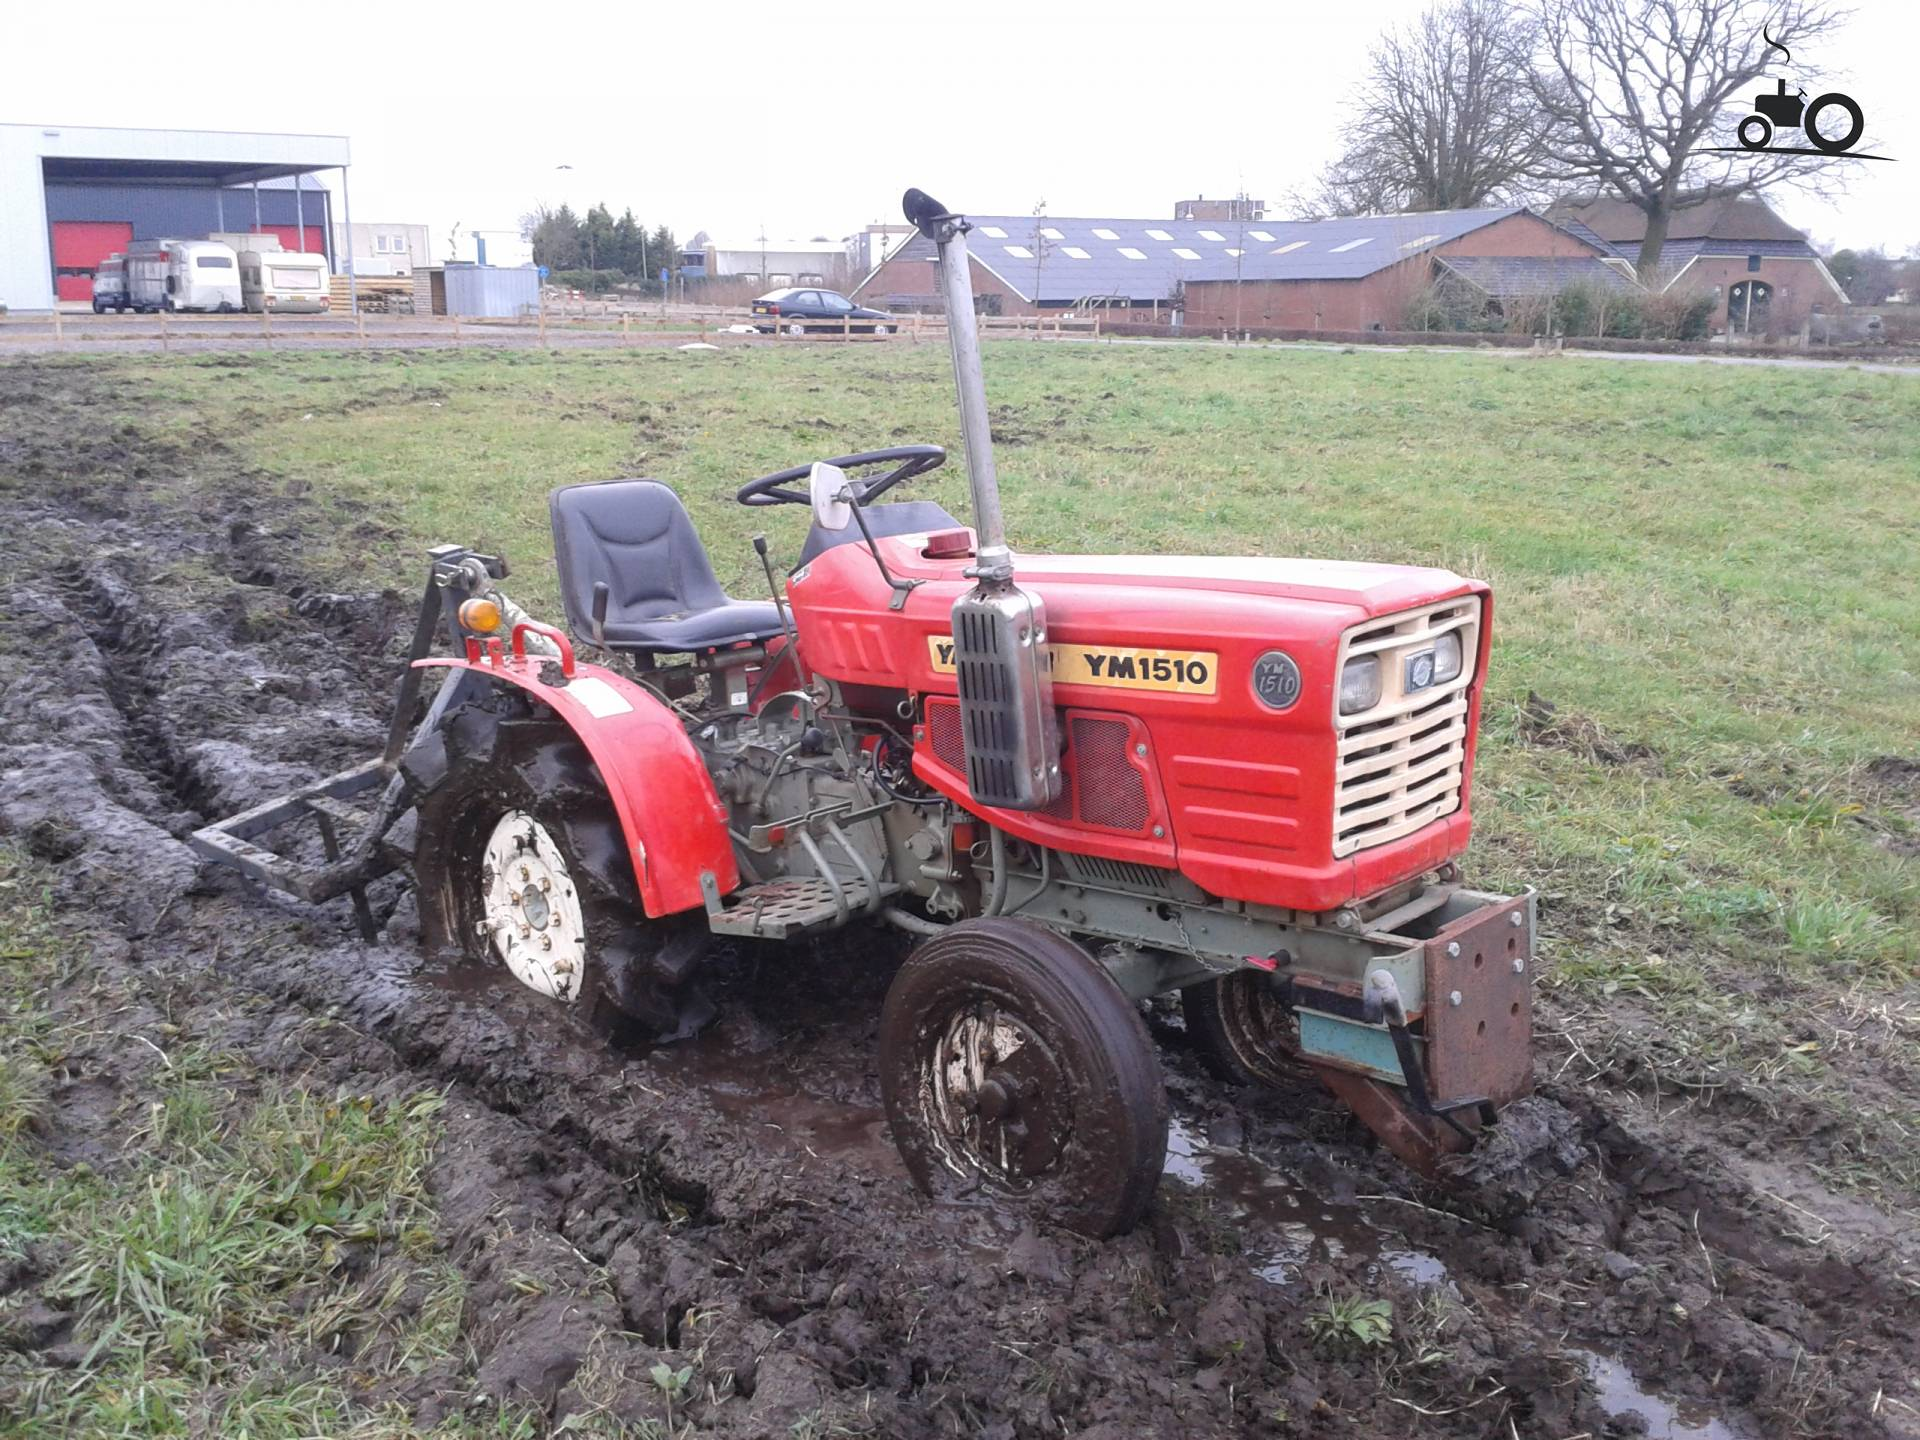 Yanmar Tractors Used Yanmar Tractors Yanmar Tractors For ...